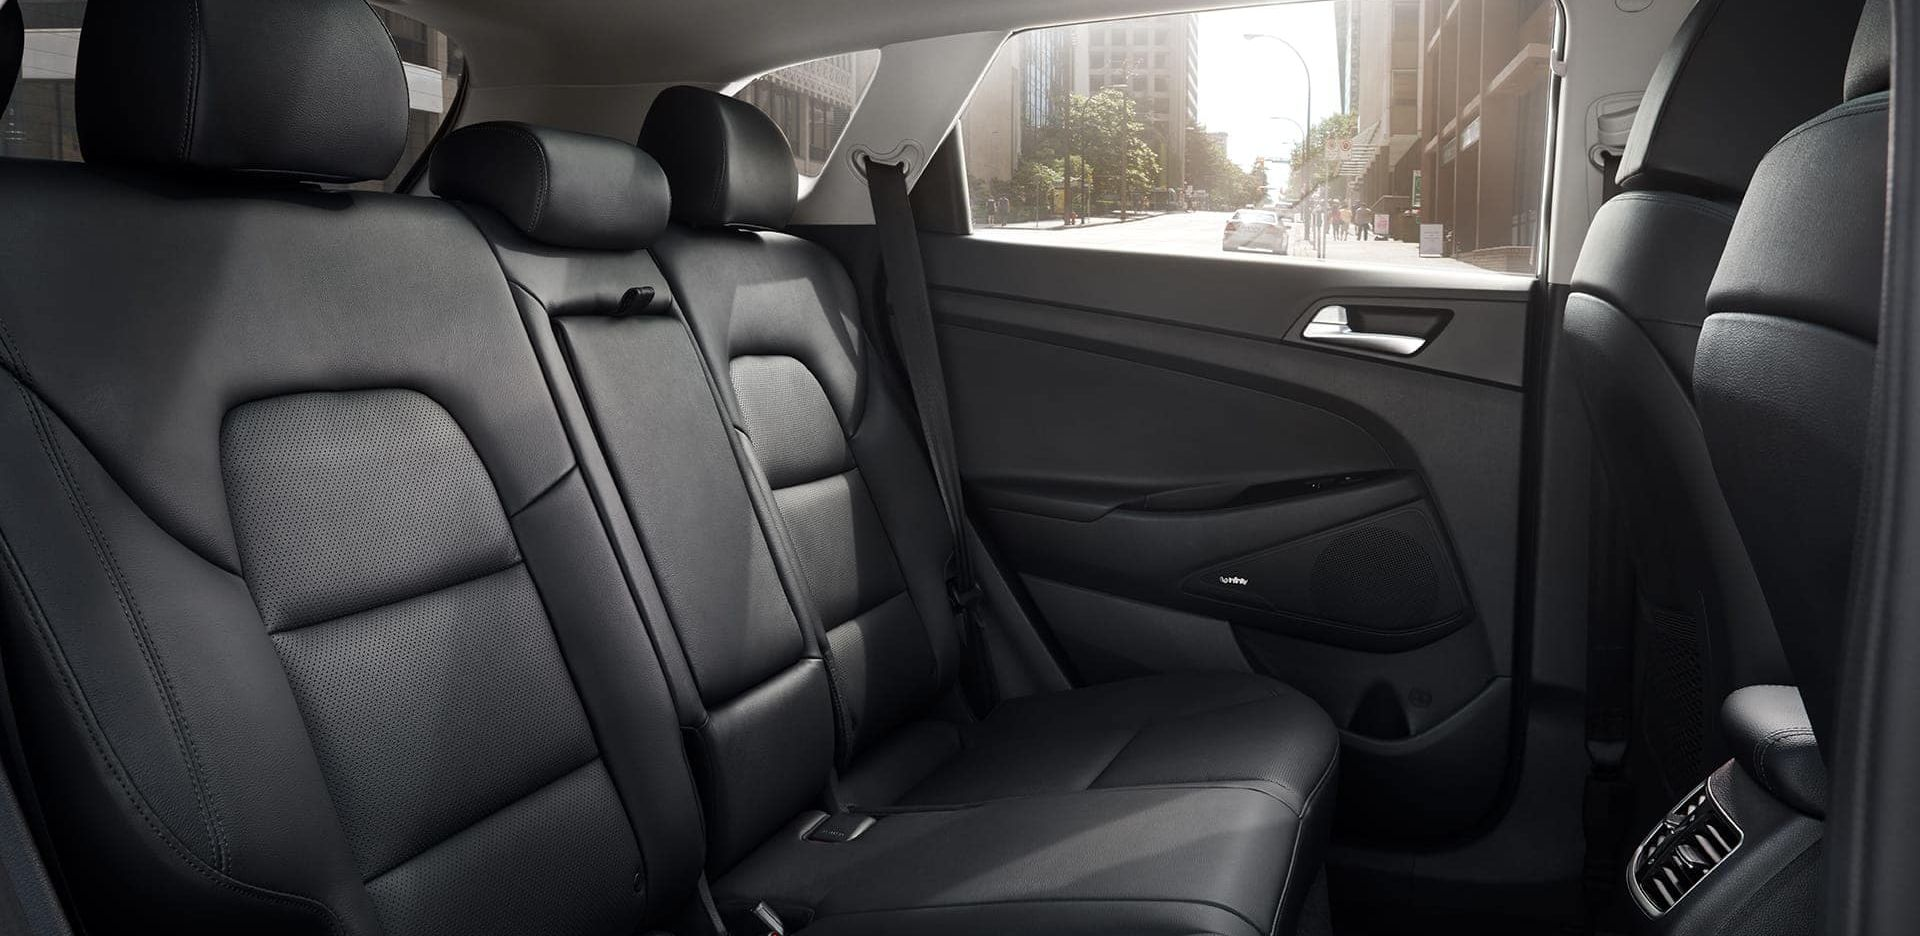 Rear Seating in the Tucson